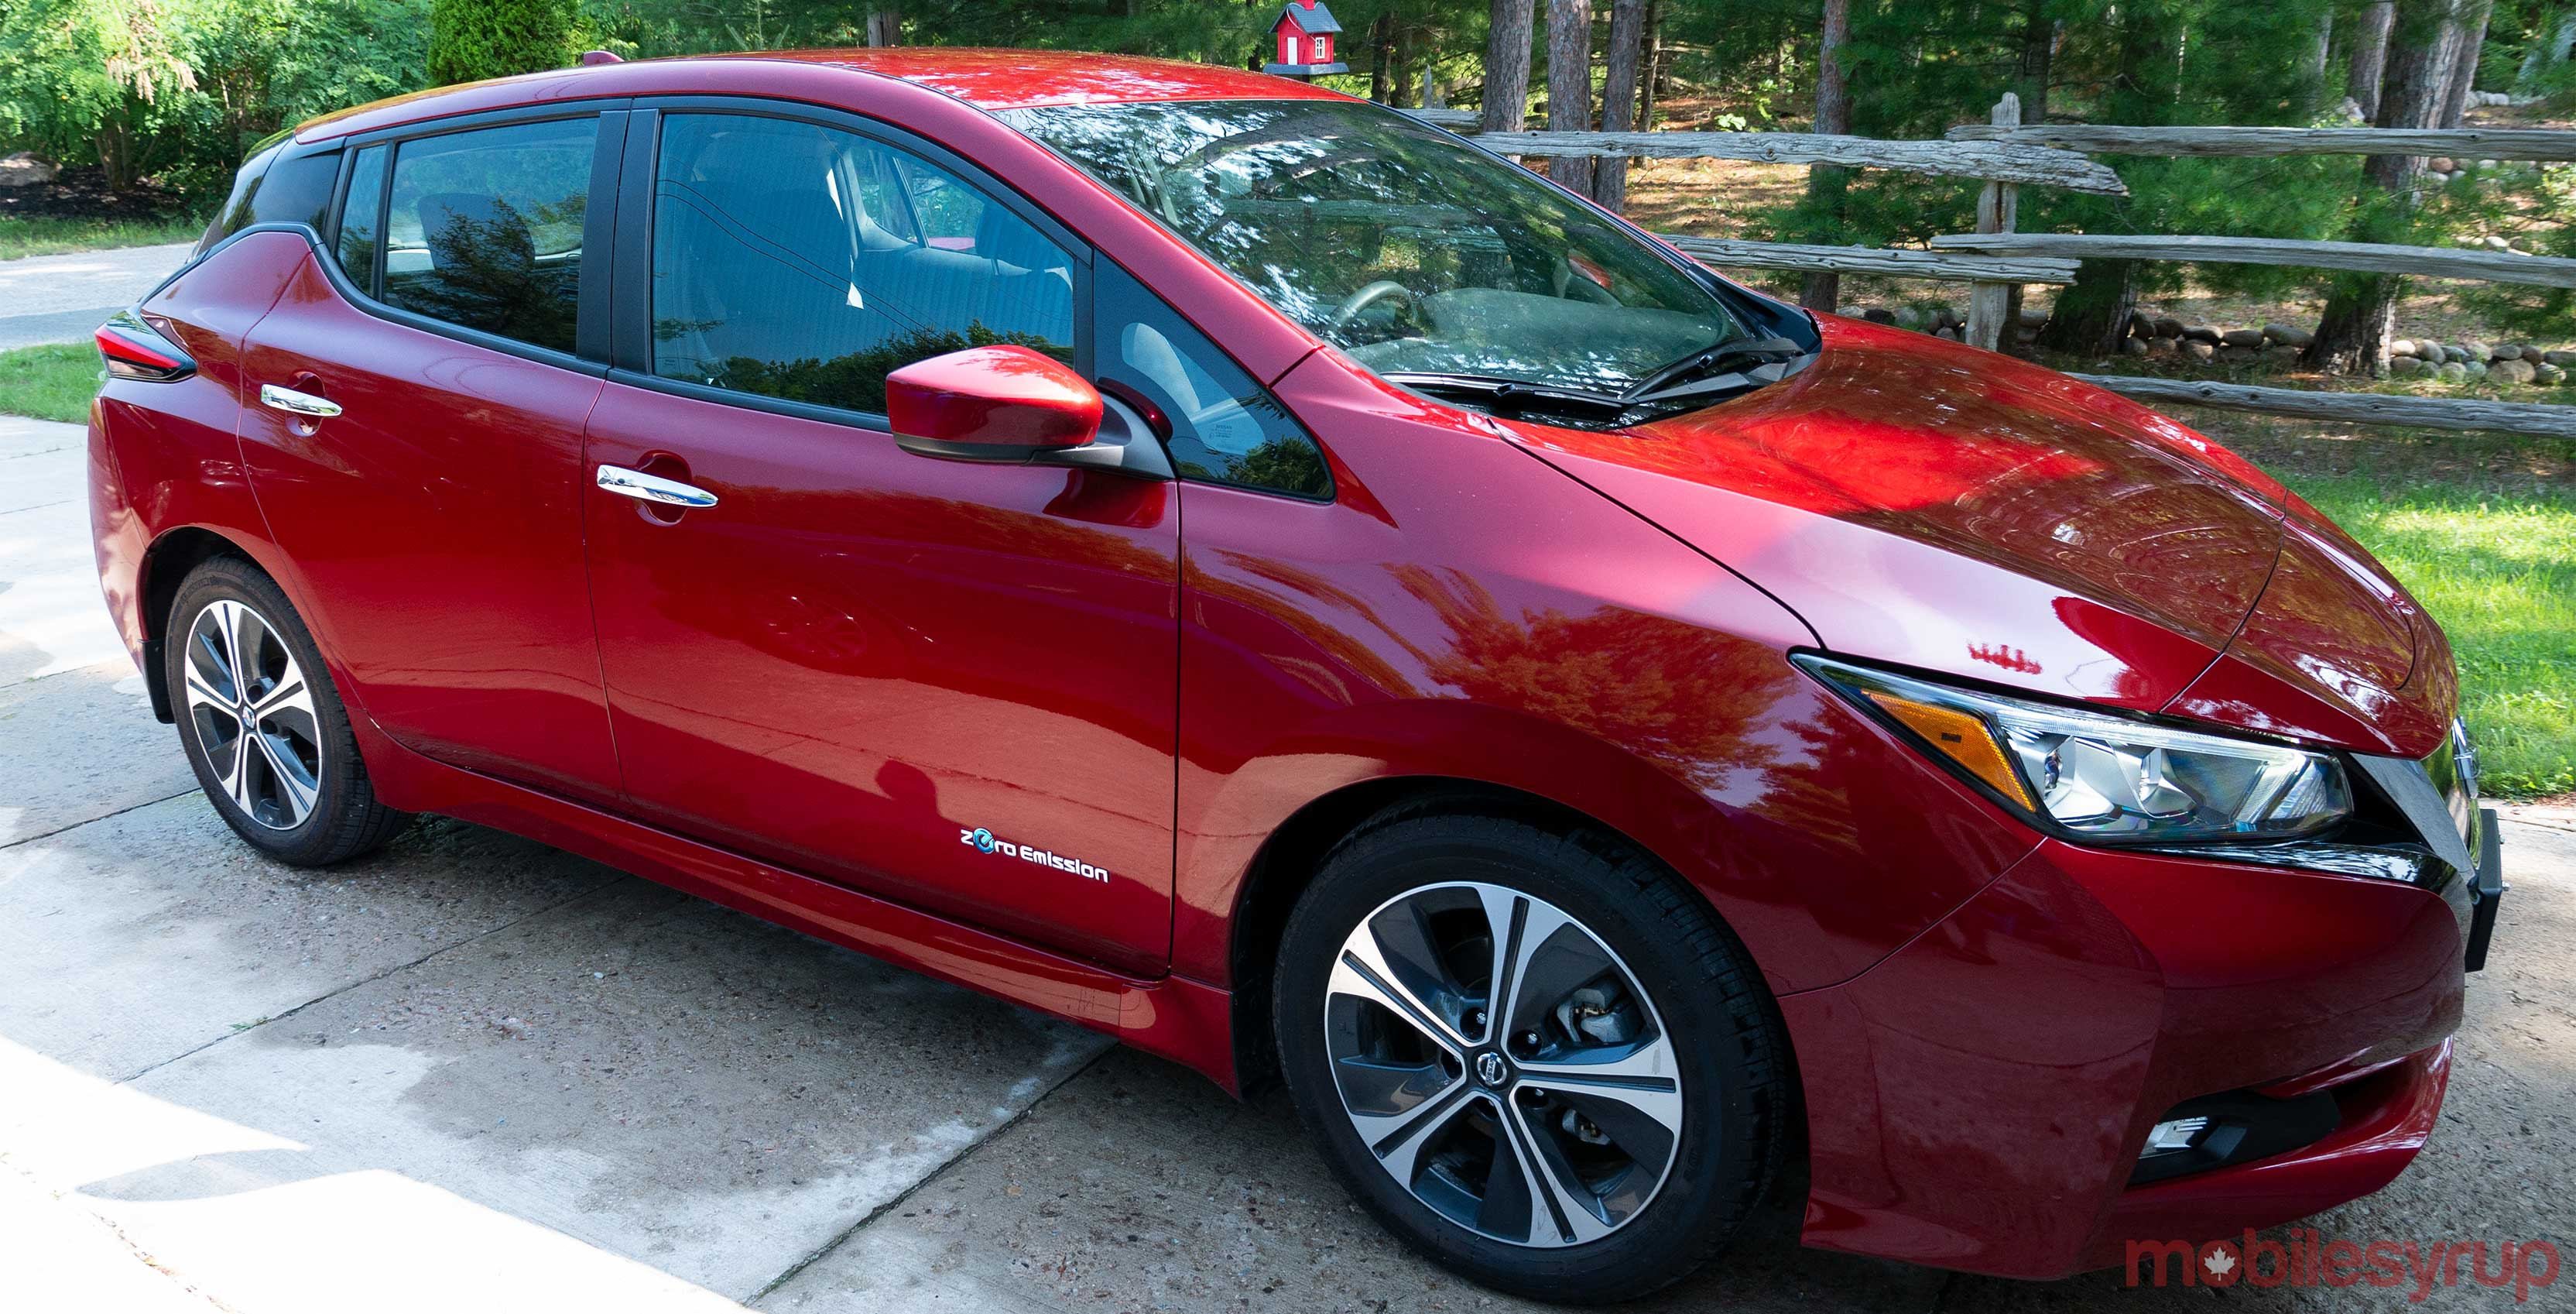 A New Electric Vehicle Purchasing Incentive From The Government Of Canada Allows Canadians To Receive 5 000 Cad Off Select Zero Emissions Vehicles